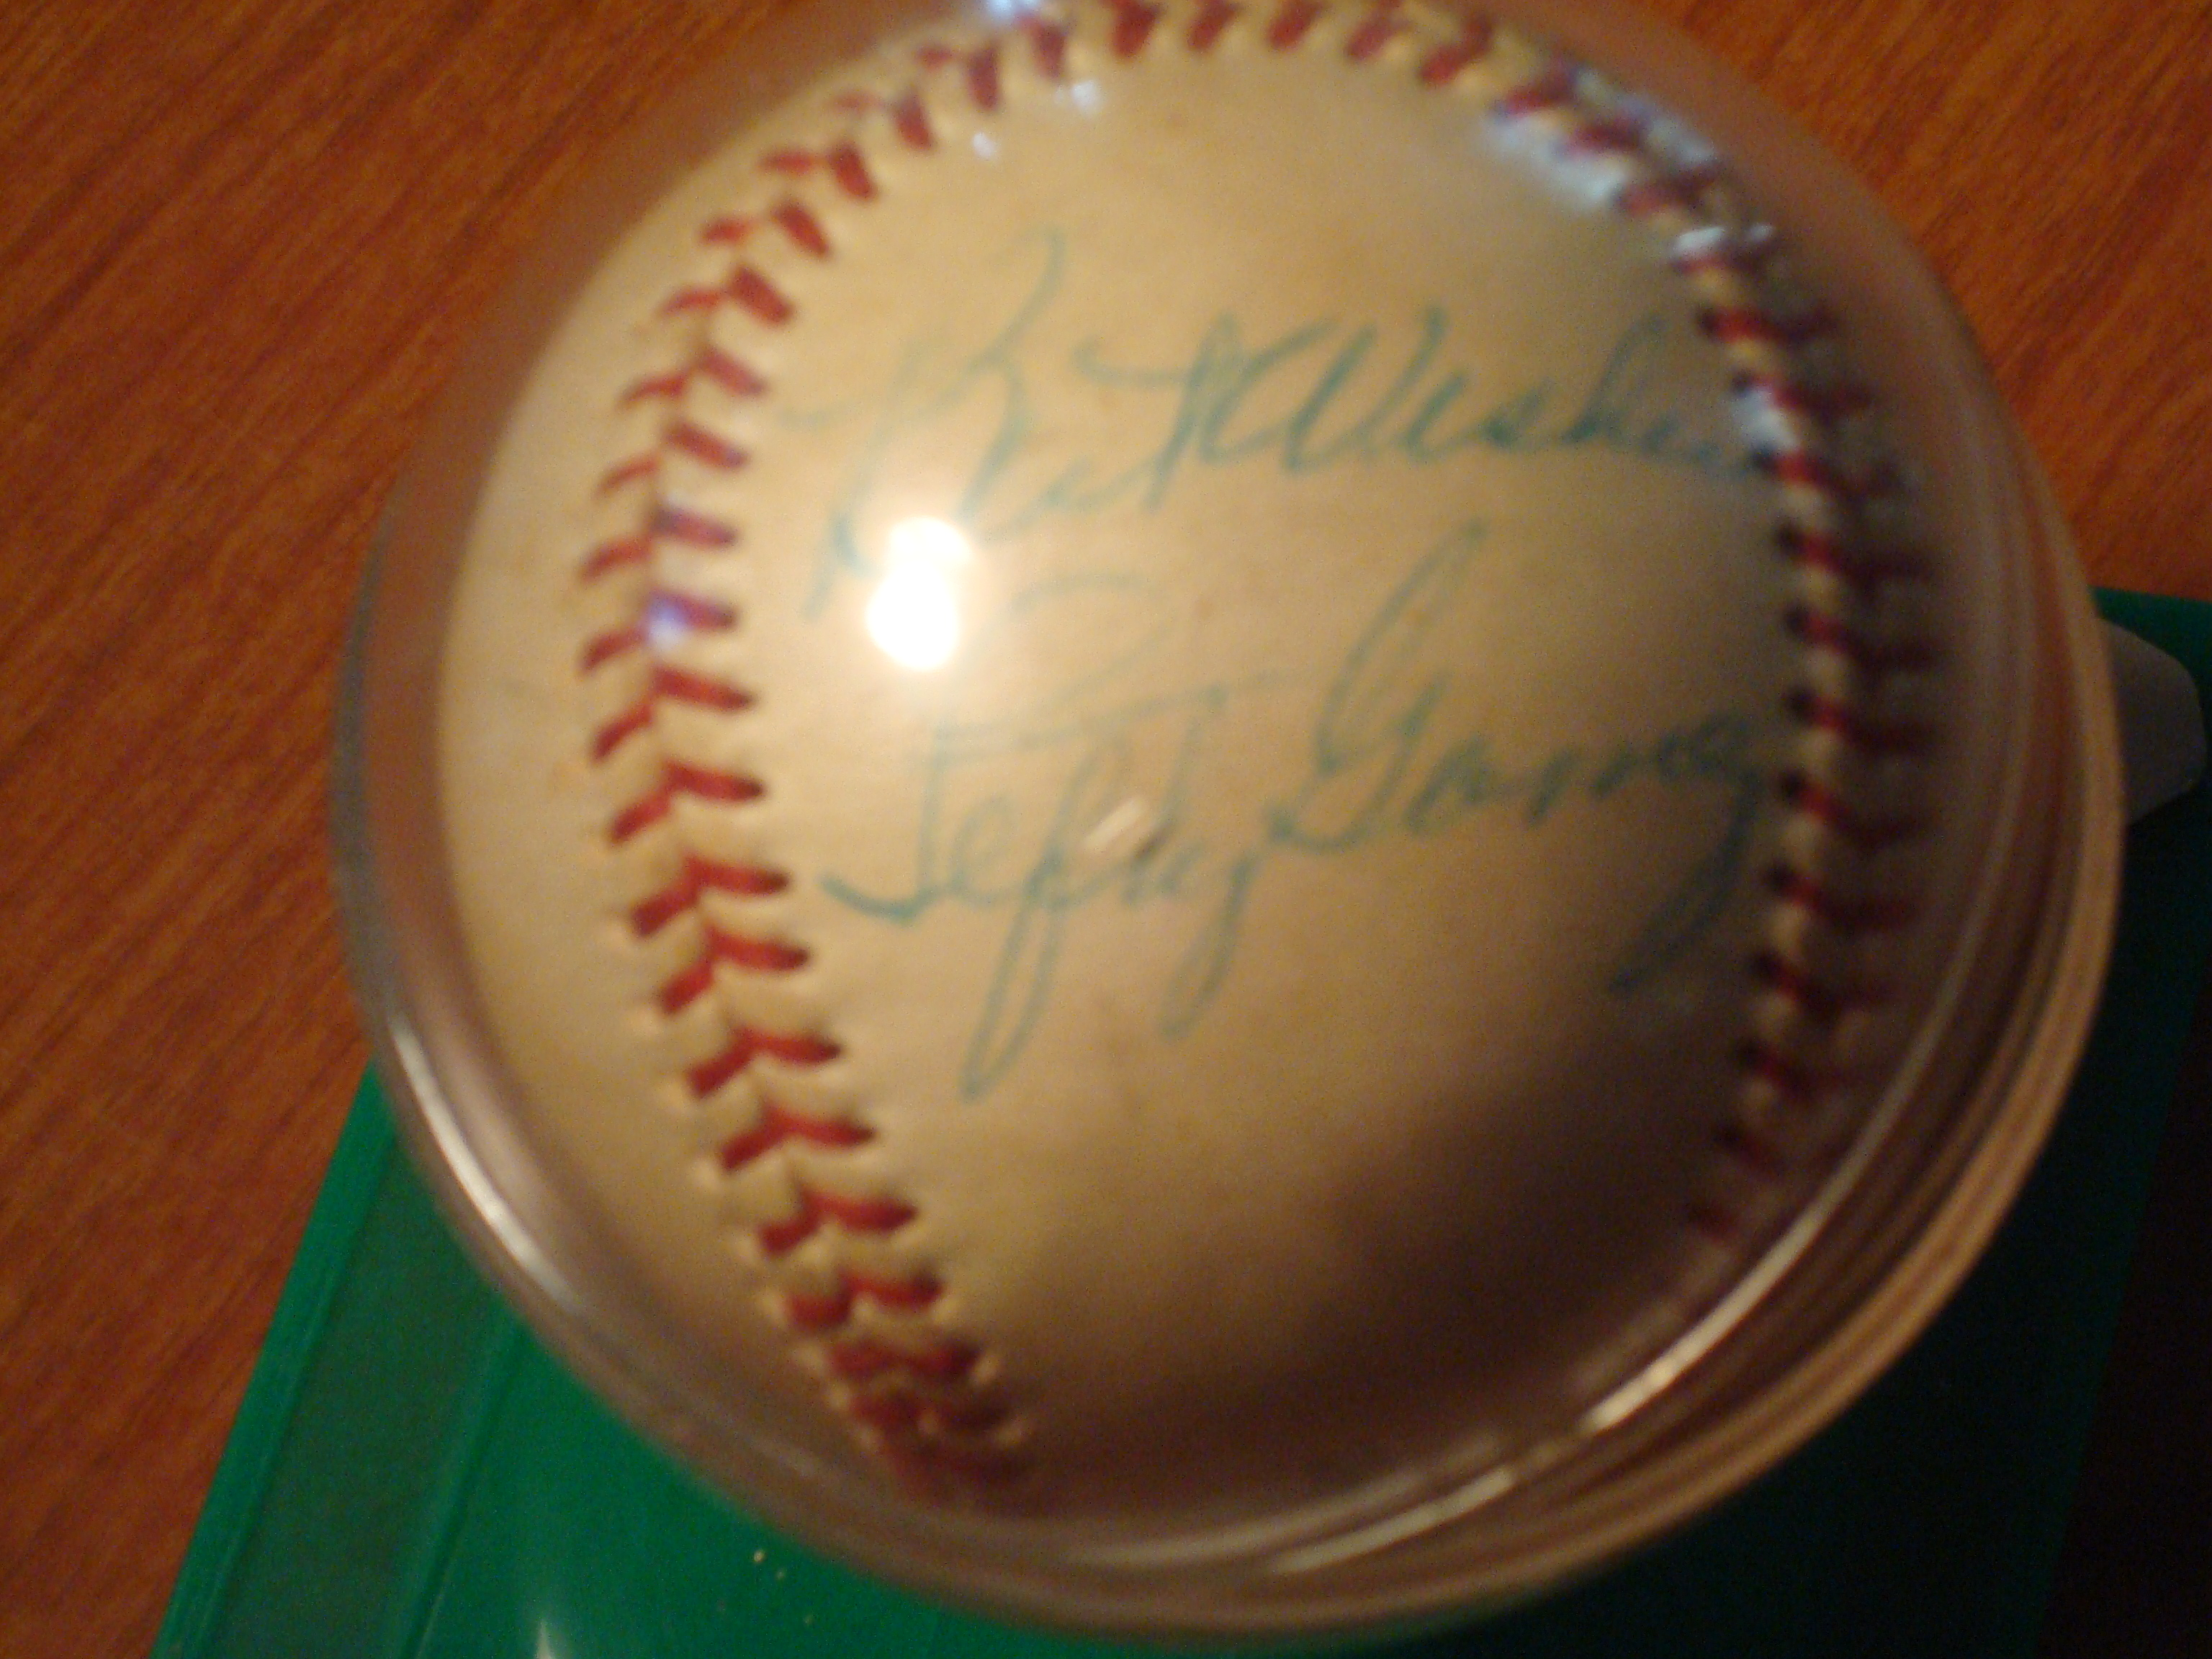 Original 1953 Rawlings Autograph Baseball of MLB Hall of Fame New York Yankeees P Lefty Gomez